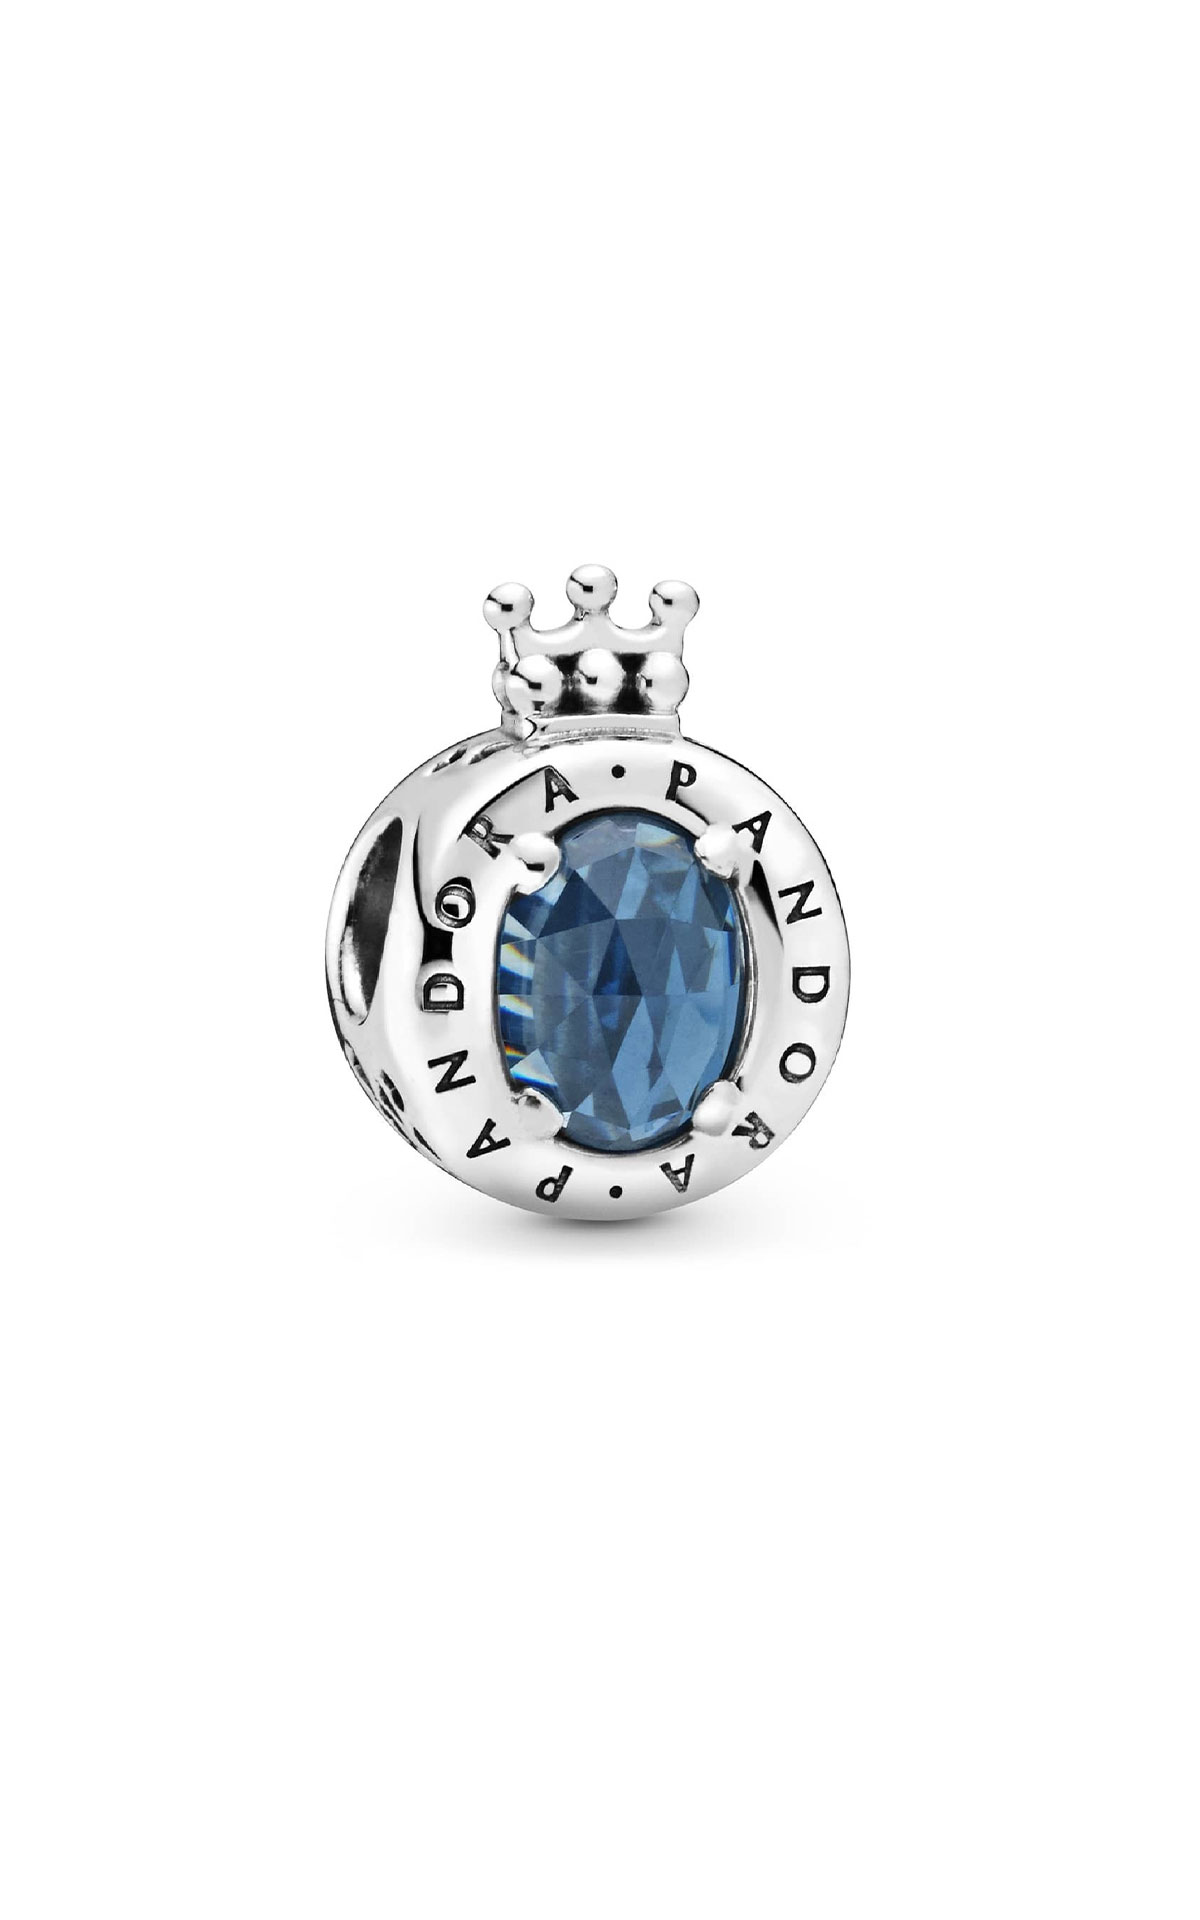 Pandora Blue sparkling crown o charm from Bicester Village